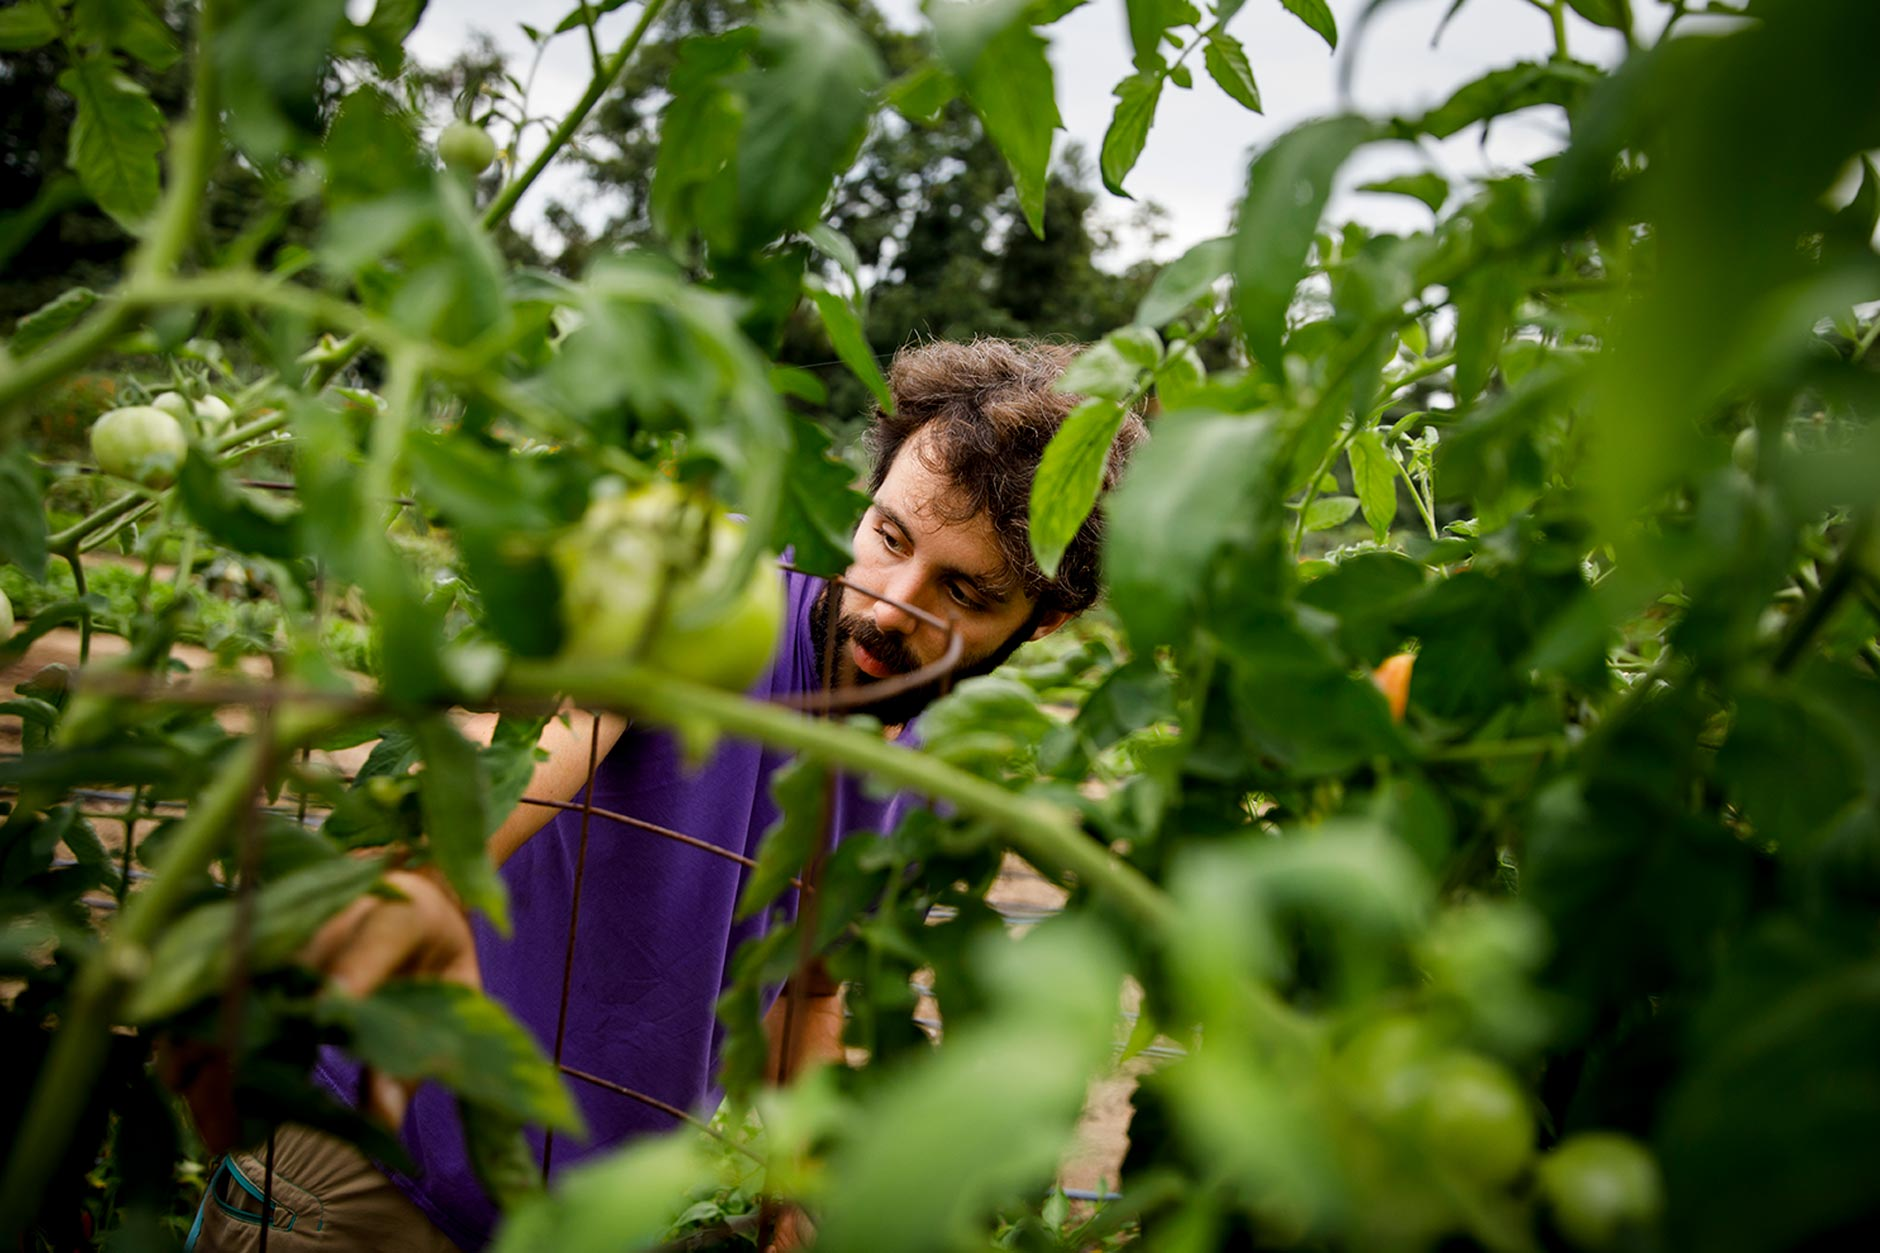 Indiana University Campus Farm manager Erin Carman-Sweeney picks tomatoes at the farm on Friday, Sept. 7, 2018. Established in 2017, the farm includes 10 agricultural acres, a late 1800's farmhouse and four historic barns at the Hinkle-Garton Farmstead just a few blocks from the IU Bloomington campus. (James Brosher/IU Communications)